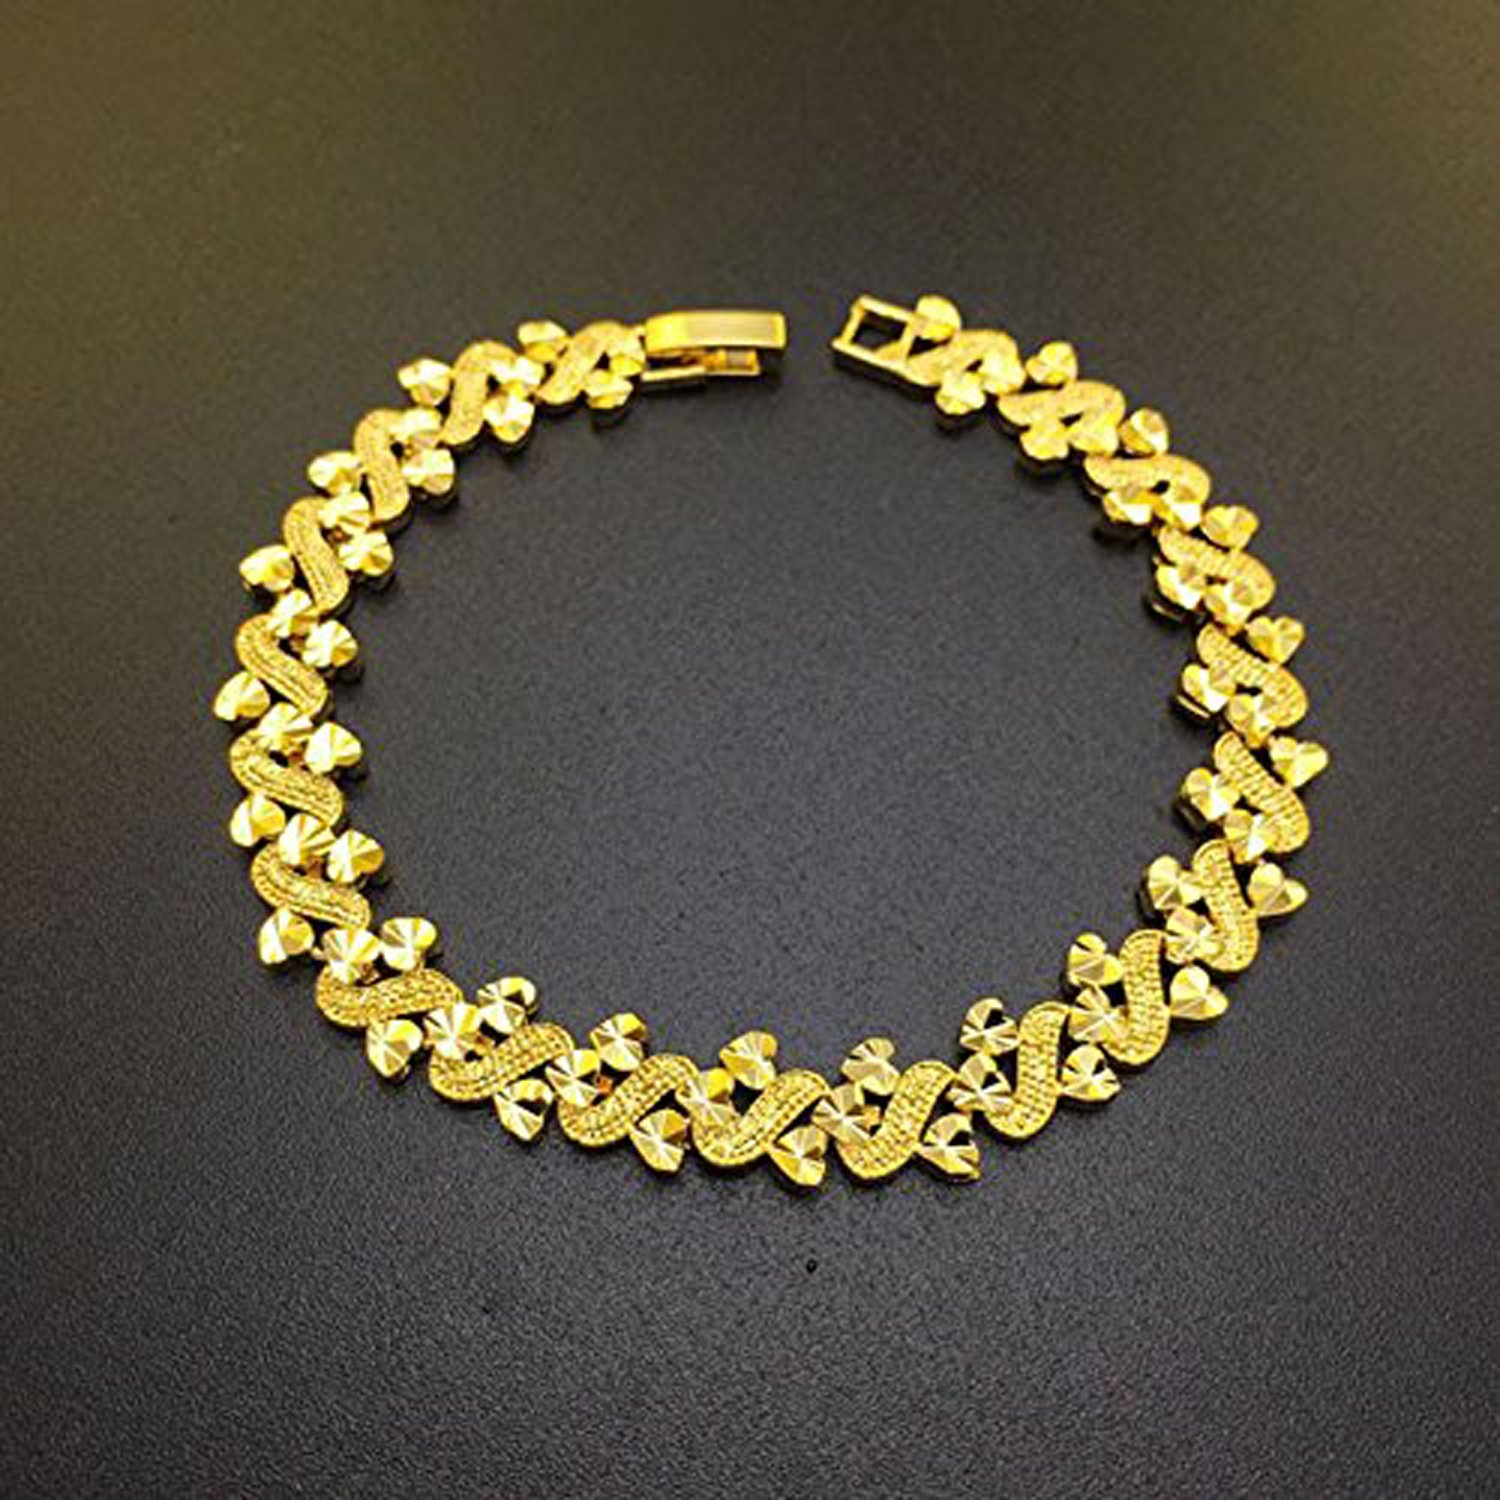 CS-DB 24K Gold Real 24k Yellow Solid Gold Filled Heart Leaf Link Bracelet Chain Bangle Women's